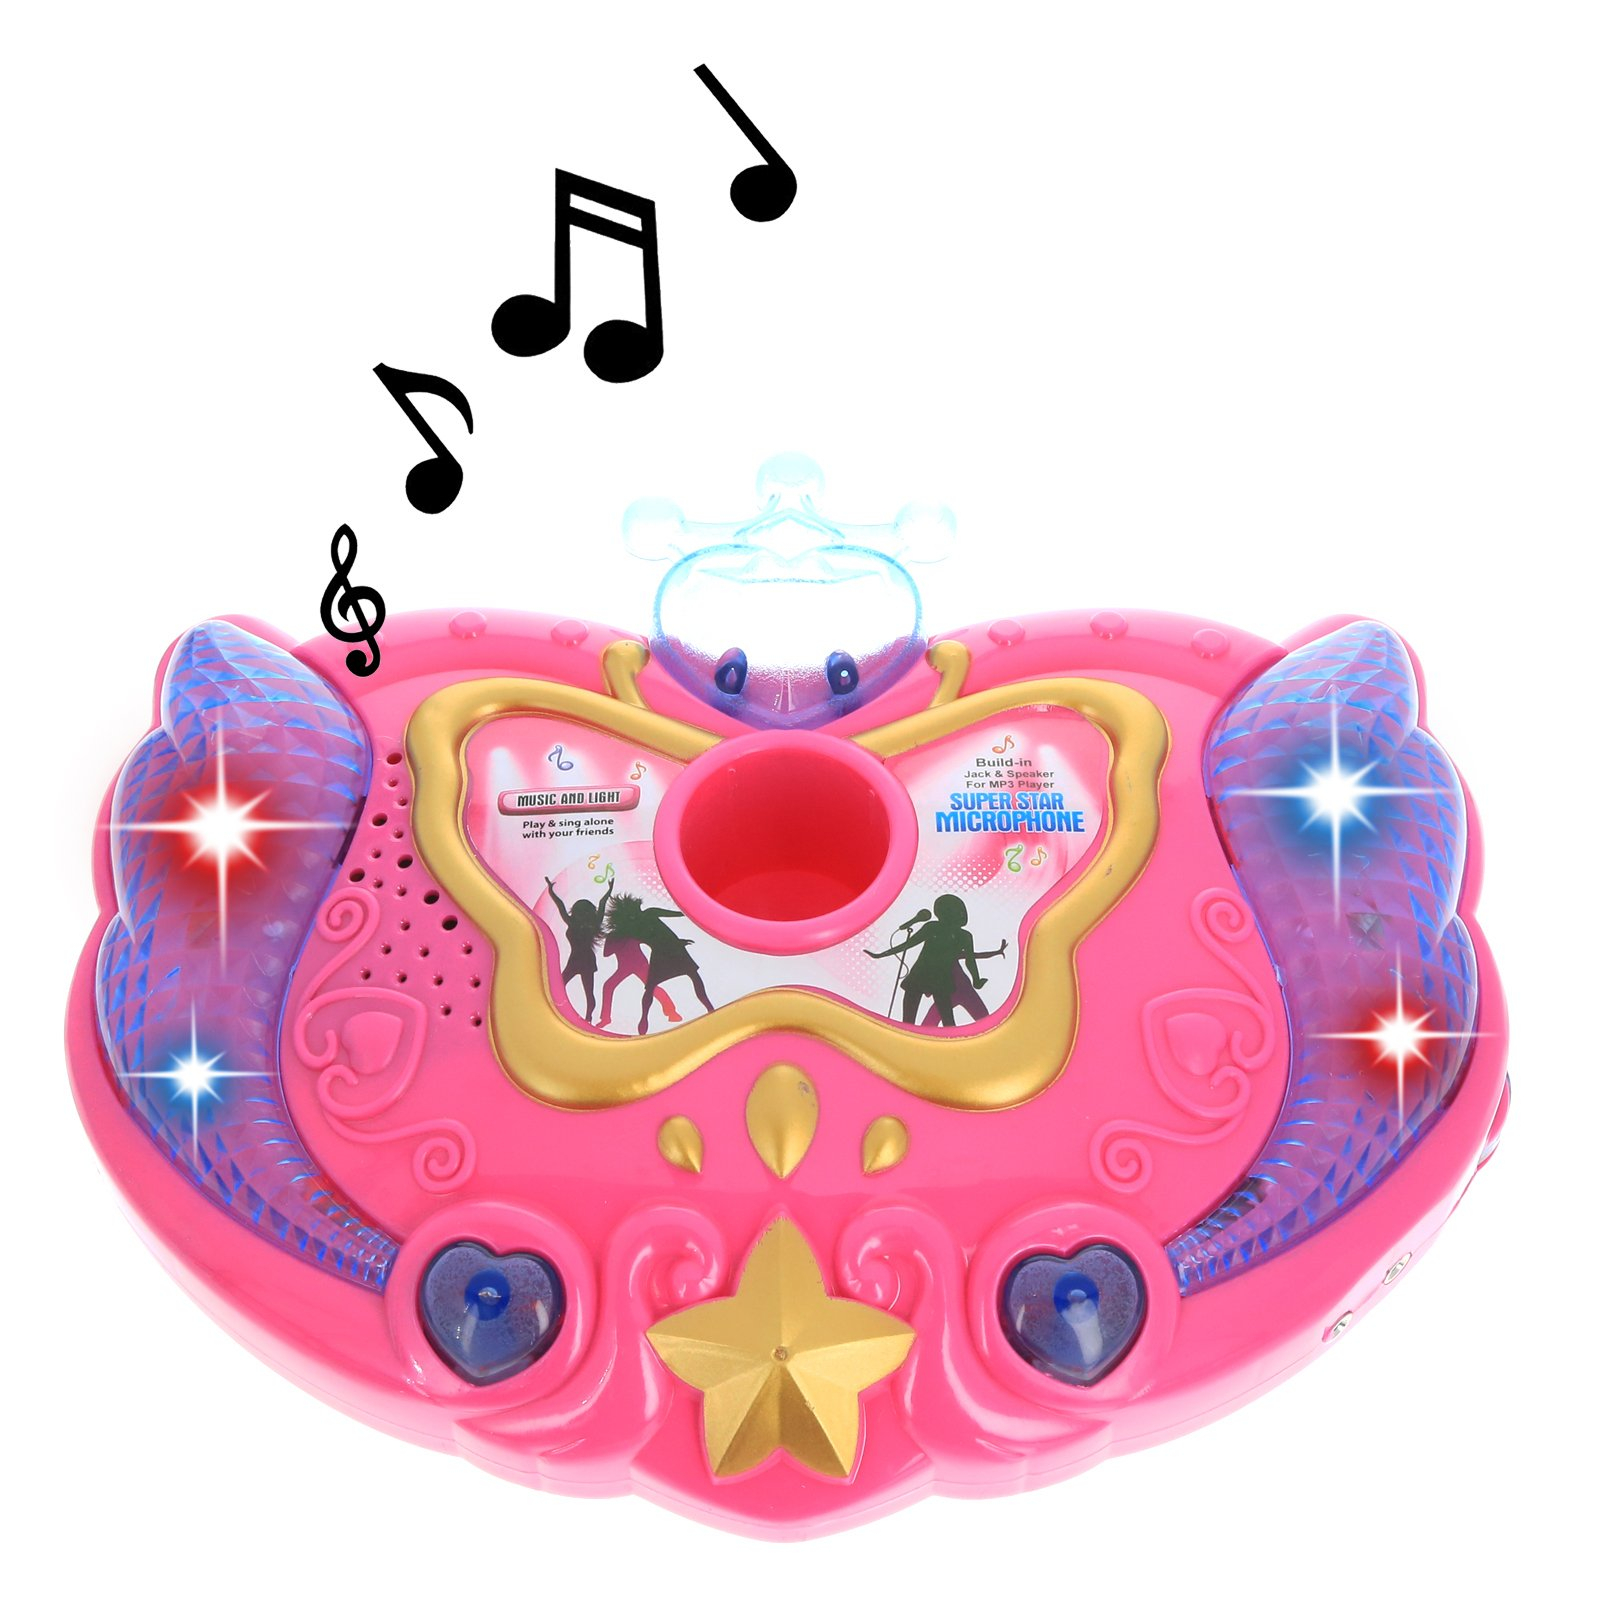 Super Star Kids IPhone Android MP3 Supported Karaoke Stand and Microphone - Pink